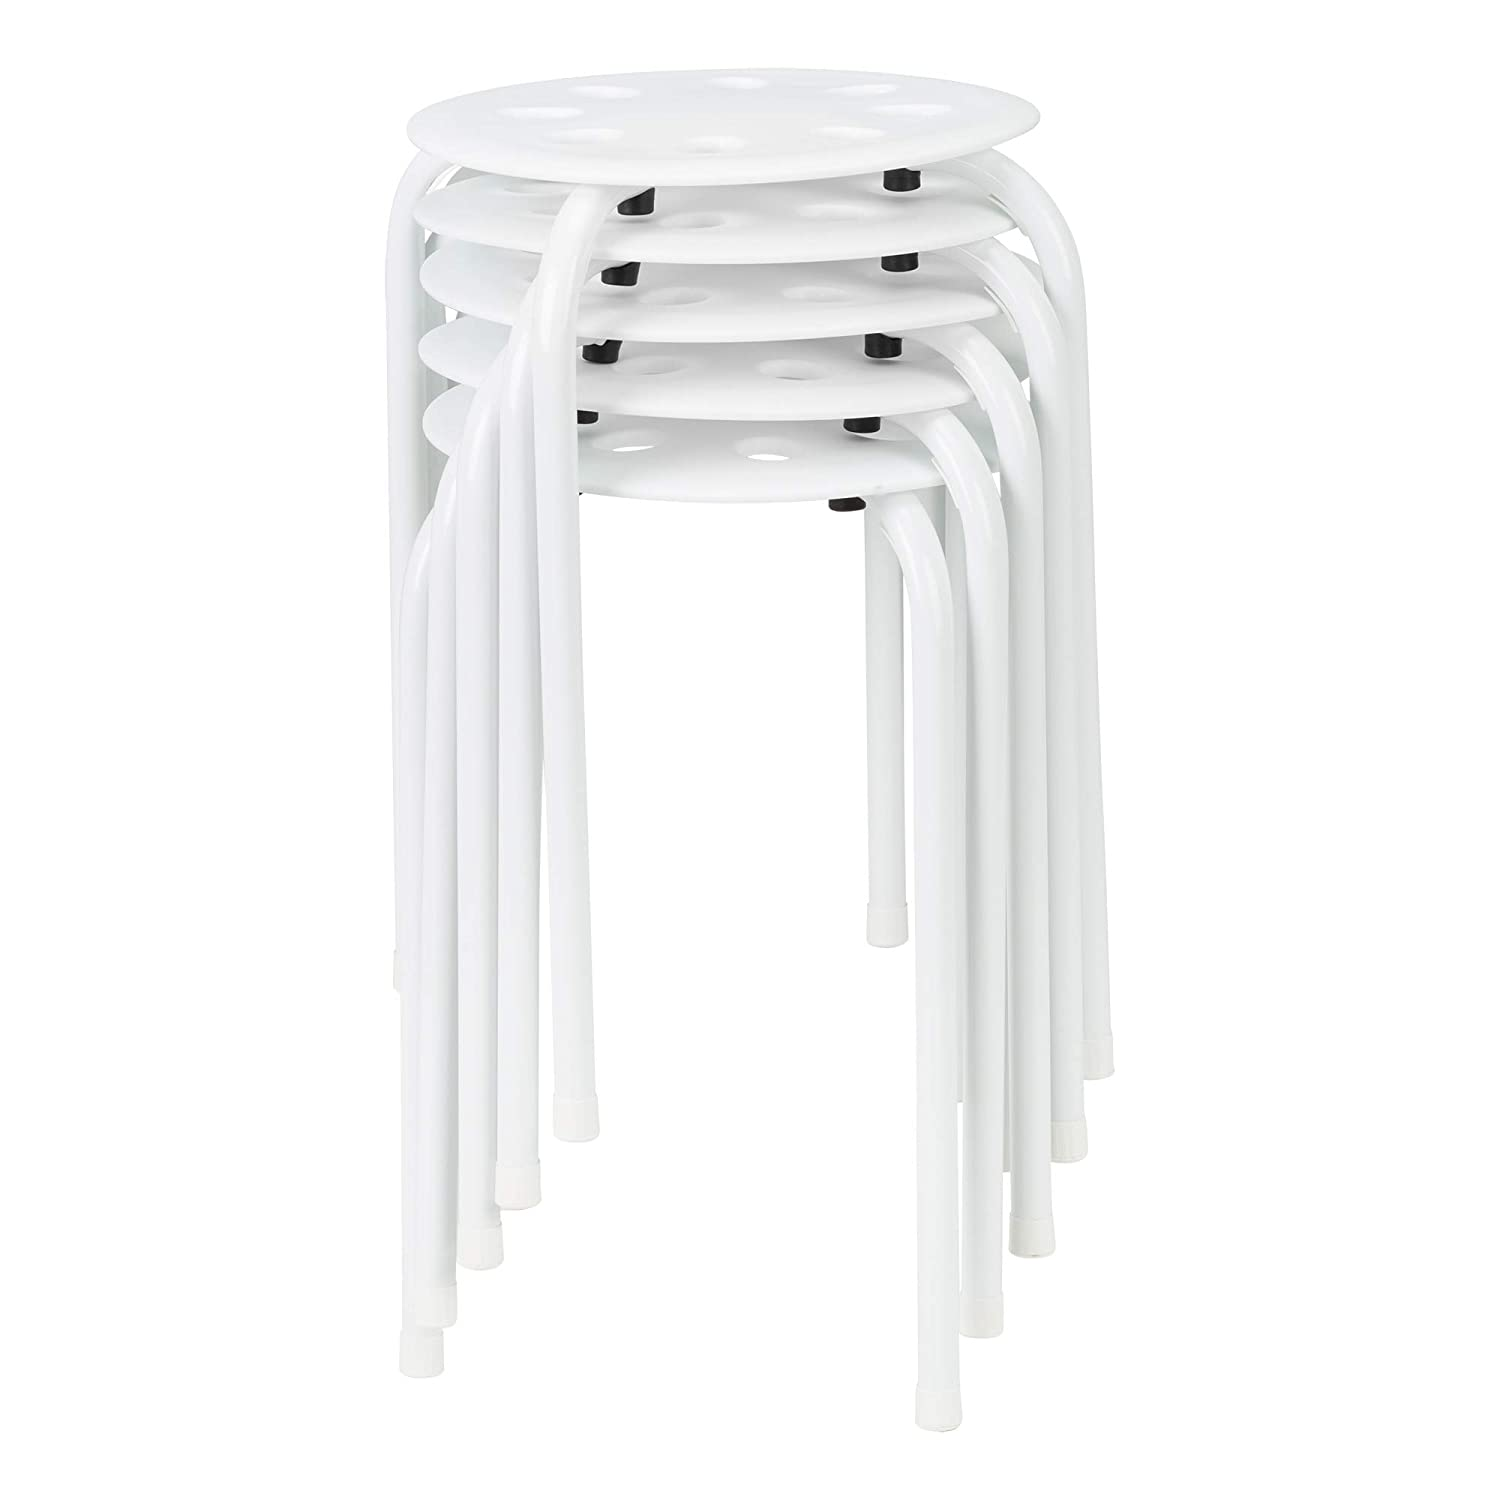 Norwood Commercial Furniture White Plastic Stack Stools (Pack of 5) NOR-STOOLWW-SO